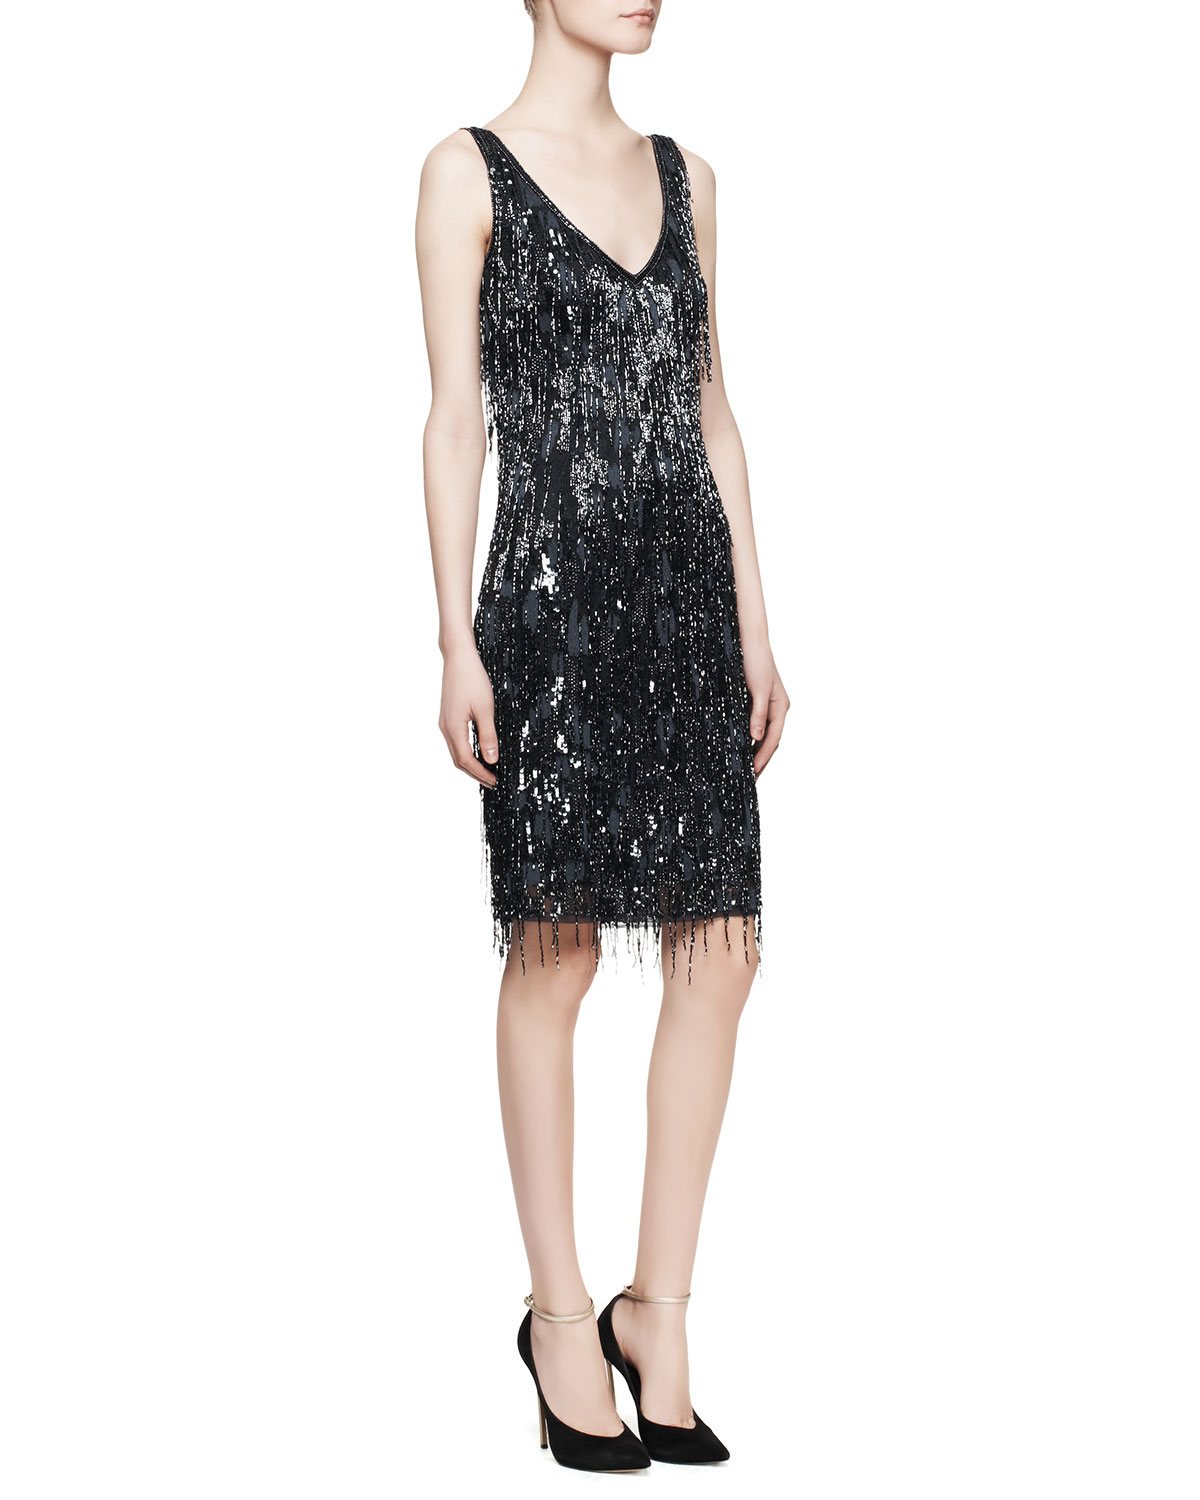 Black dress jcpenney - Jcpenney Womens Dresses Photo Album Vicing Jcpenney Womens Dresses Photo Album Vicing